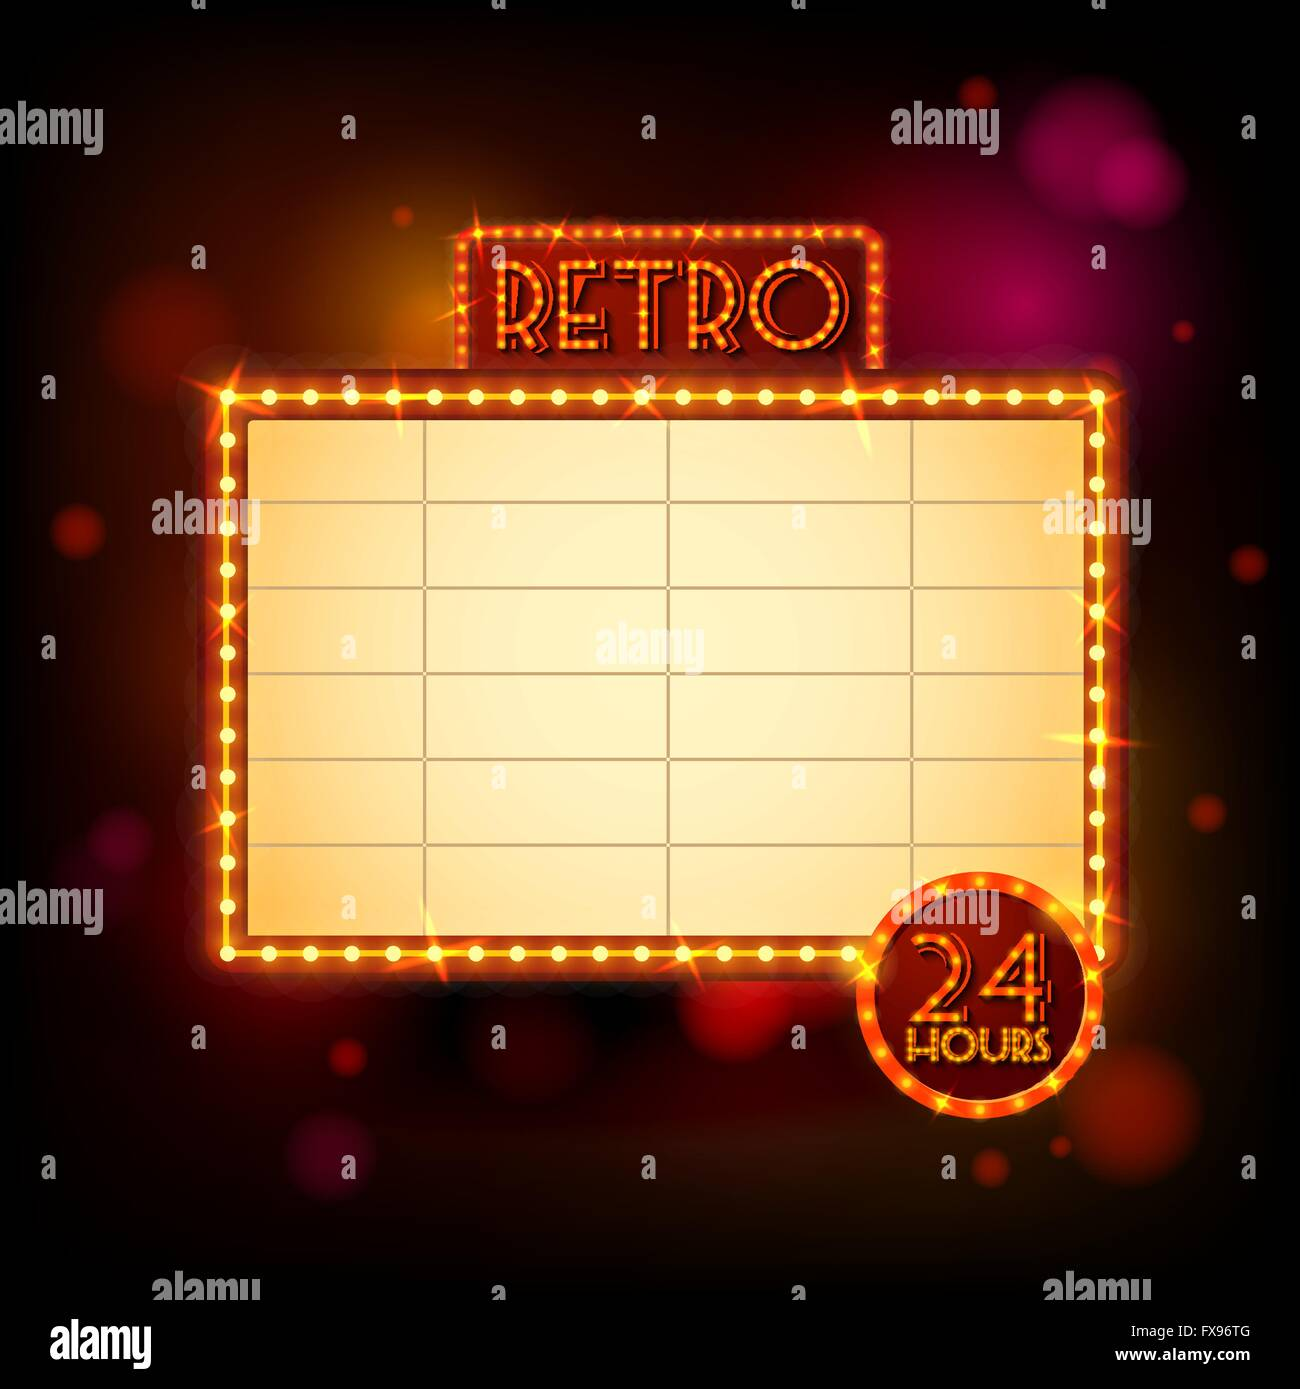 Retro billboard poster - Stock Vector